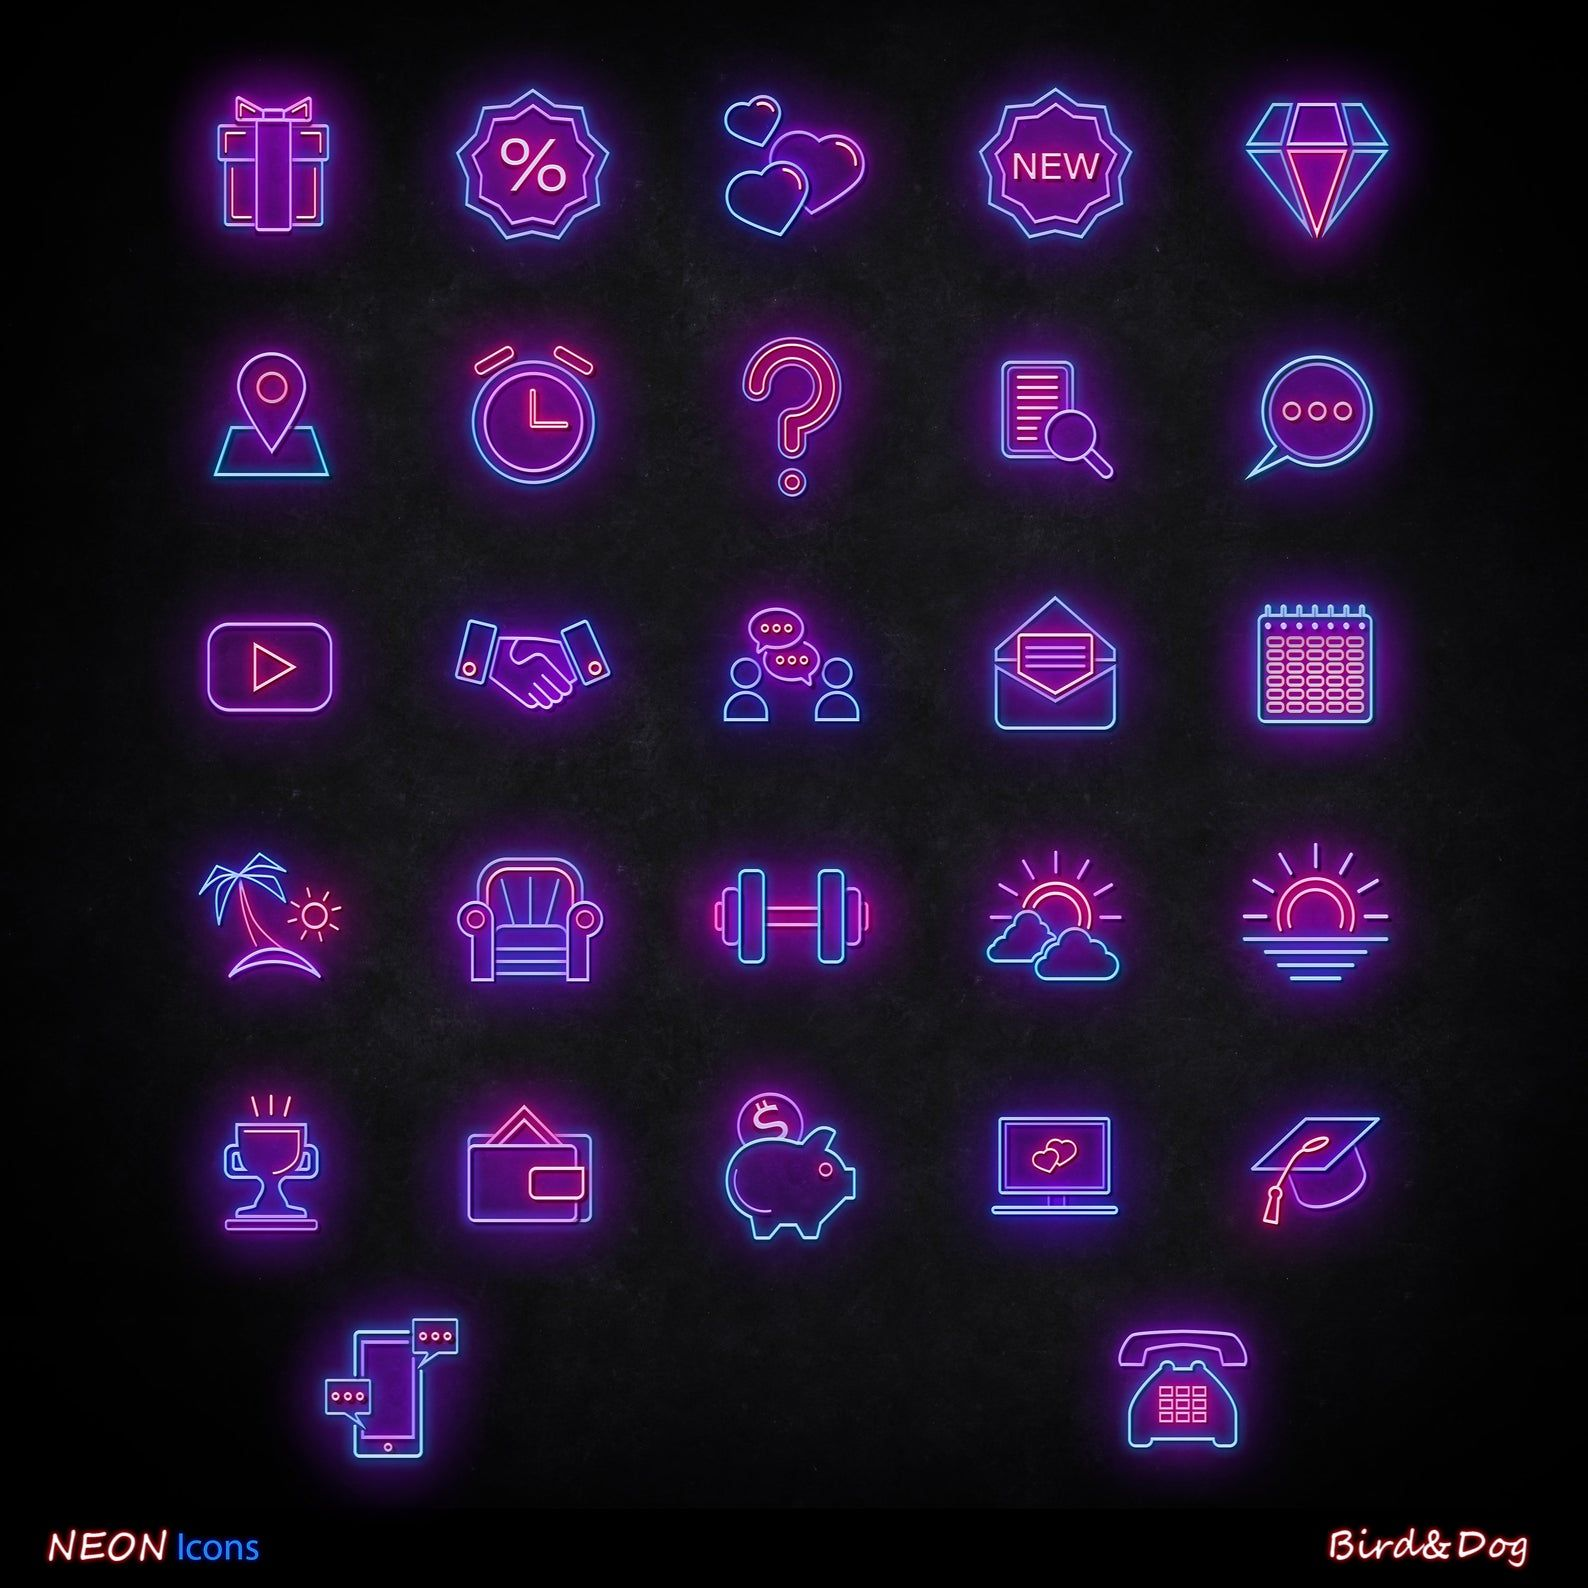 56 Instagram story Highlight covers / Neon icons for